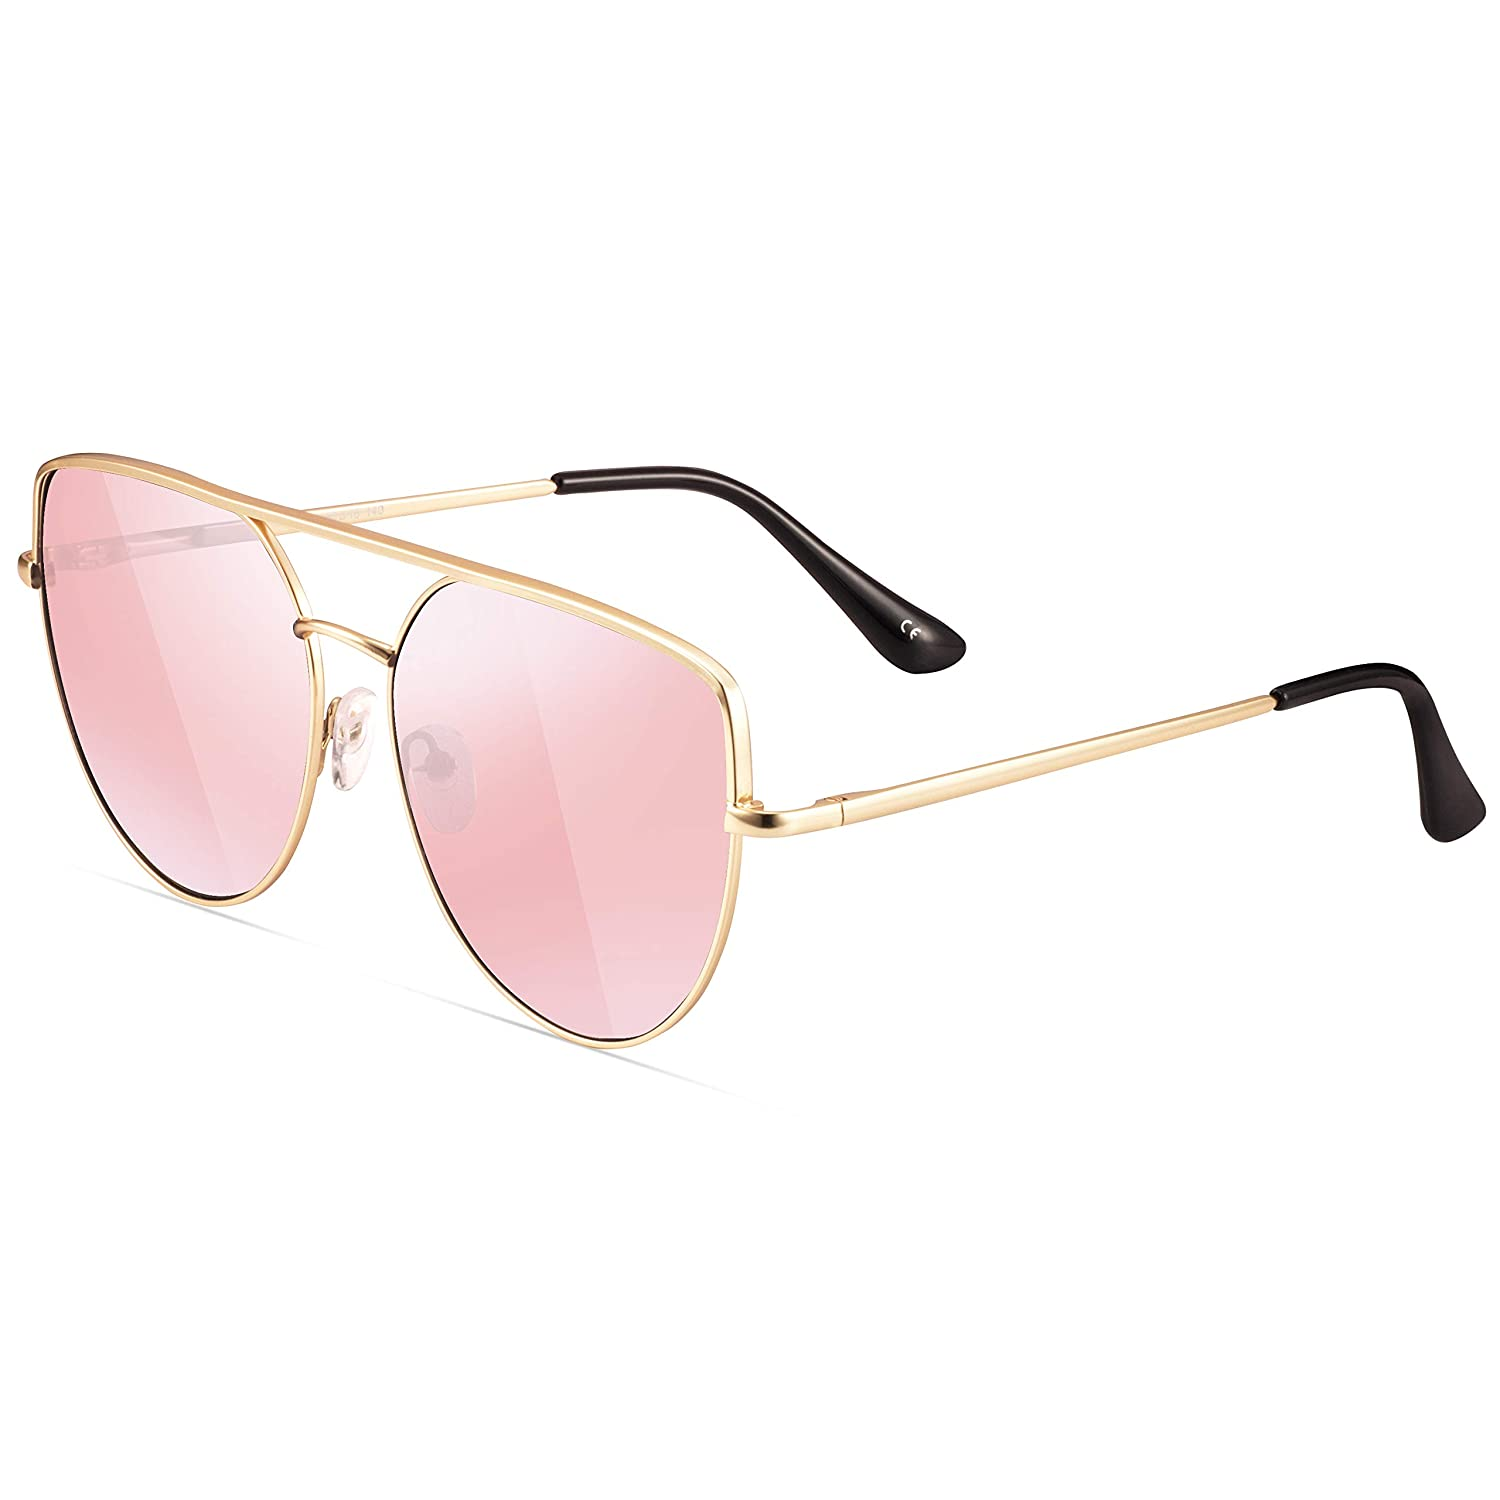 c341a3d38 metal frame; Composite lens; polarized; Lens width: 2.36 inches; ✅ FASHION CATEYE  SUNGLASSES FOR WOMEN ...